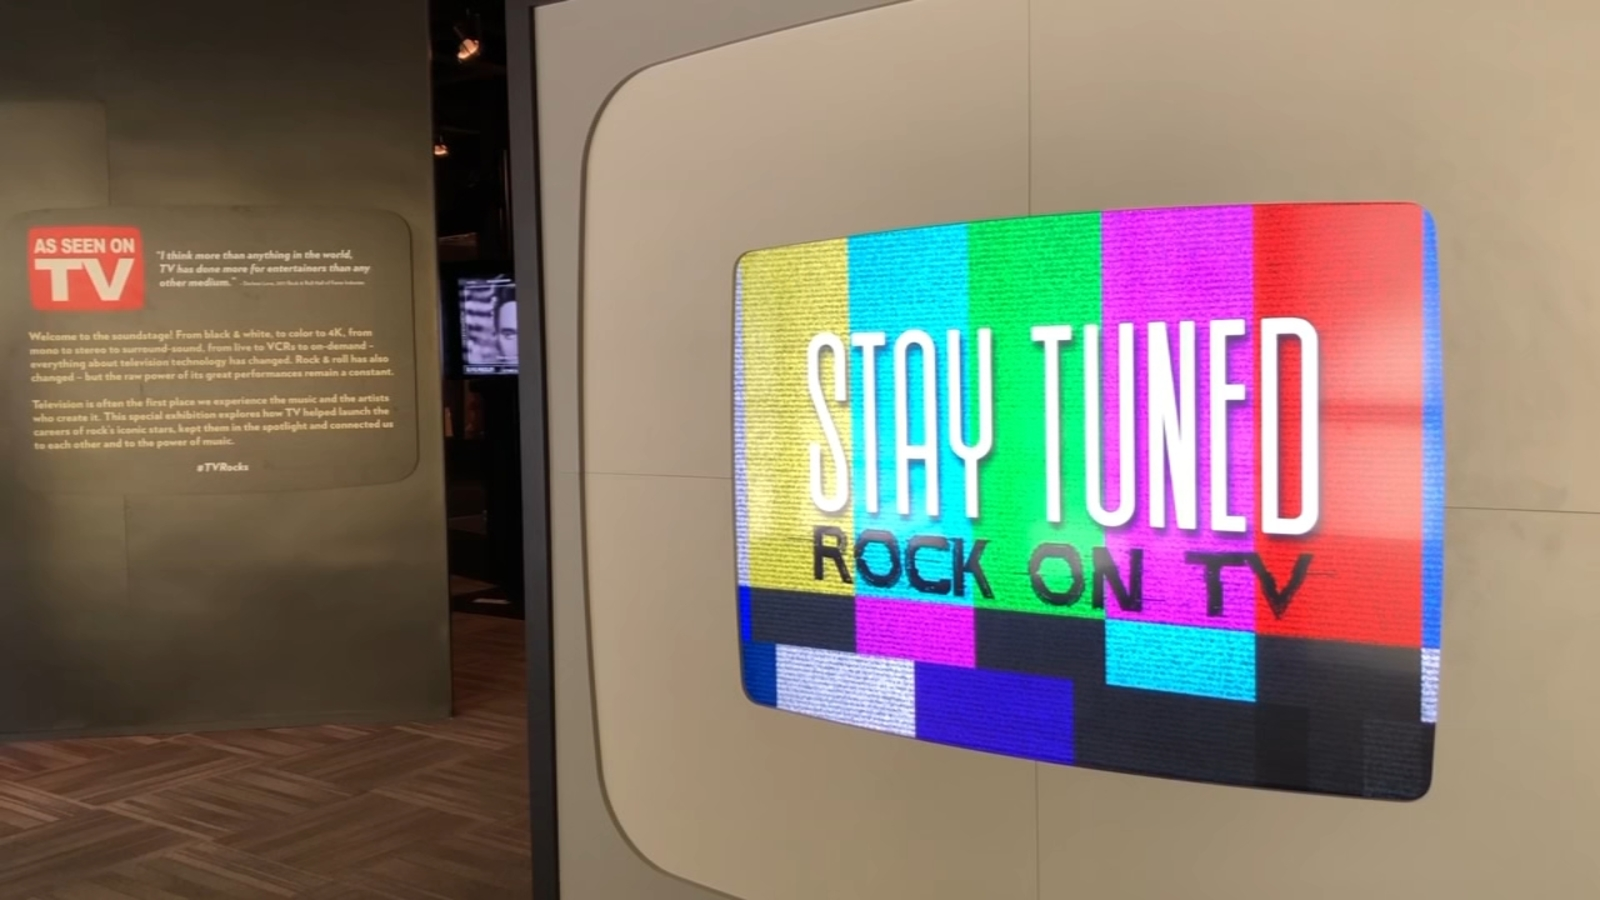 Rock and Roll Hall of Fame TV exhibit puts music history on display